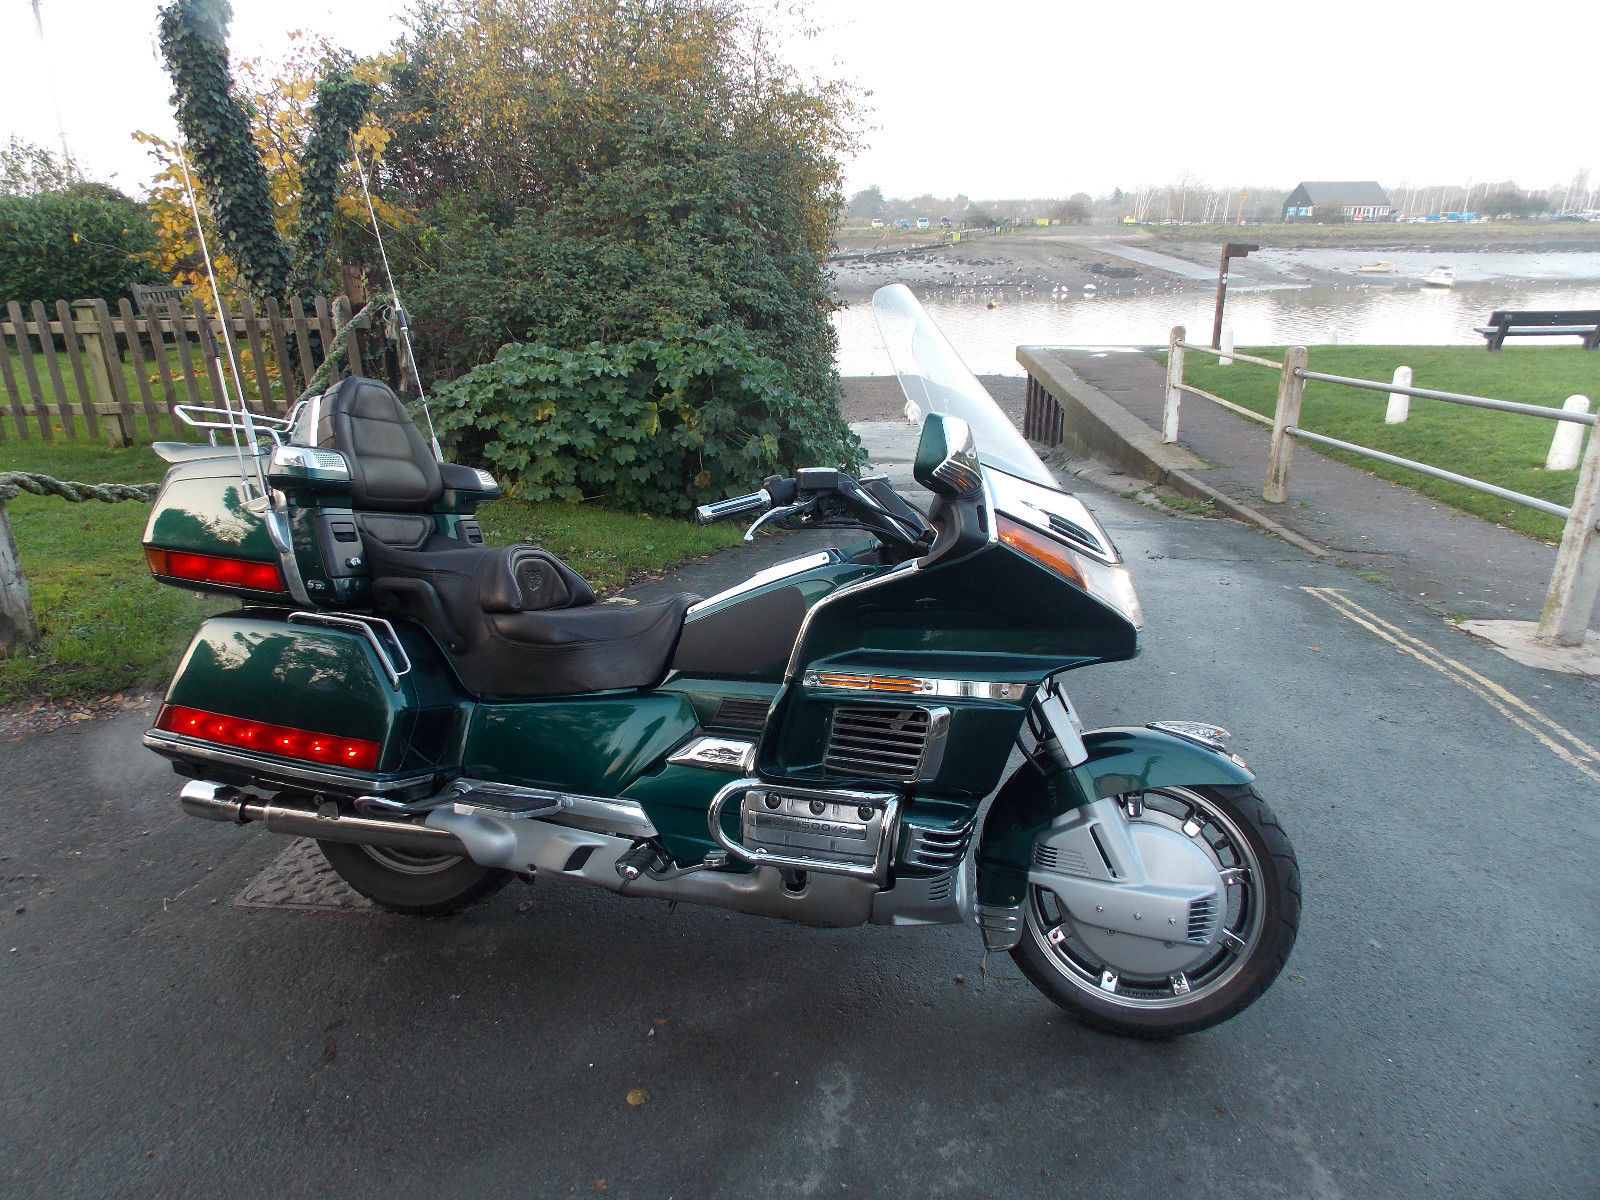 1992 honda goldwing 1500 low mileage. Black Bedroom Furniture Sets. Home Design Ideas